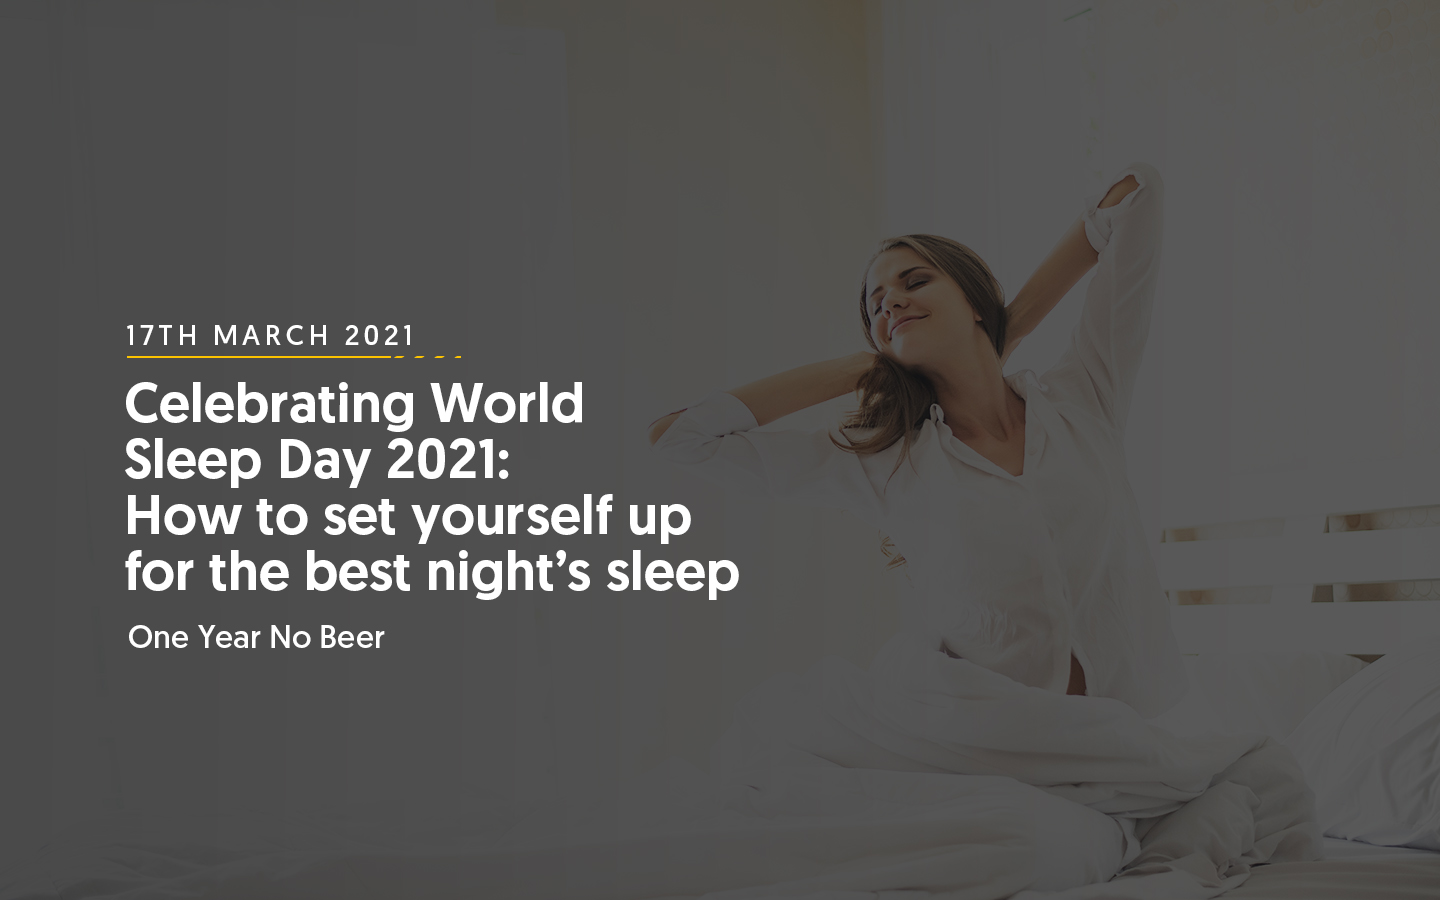 Celebrating World Sleep Day 2021: How to set yourself up for the best night's sleep